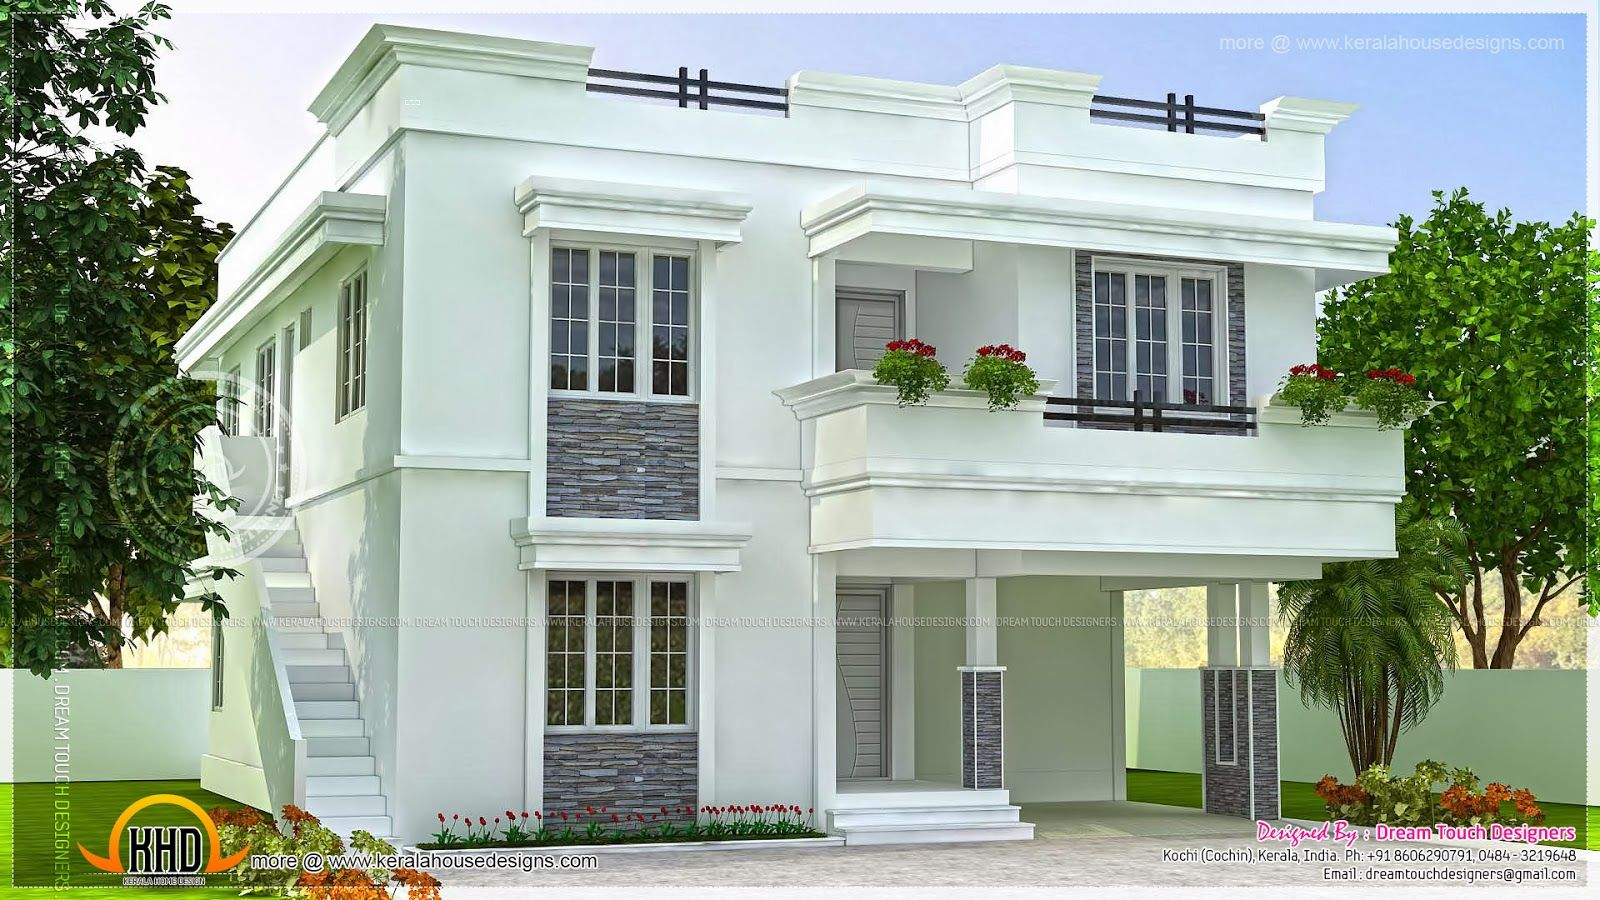 Modern beautiful home modern beautiful home design indian for Beautiful home designs photos